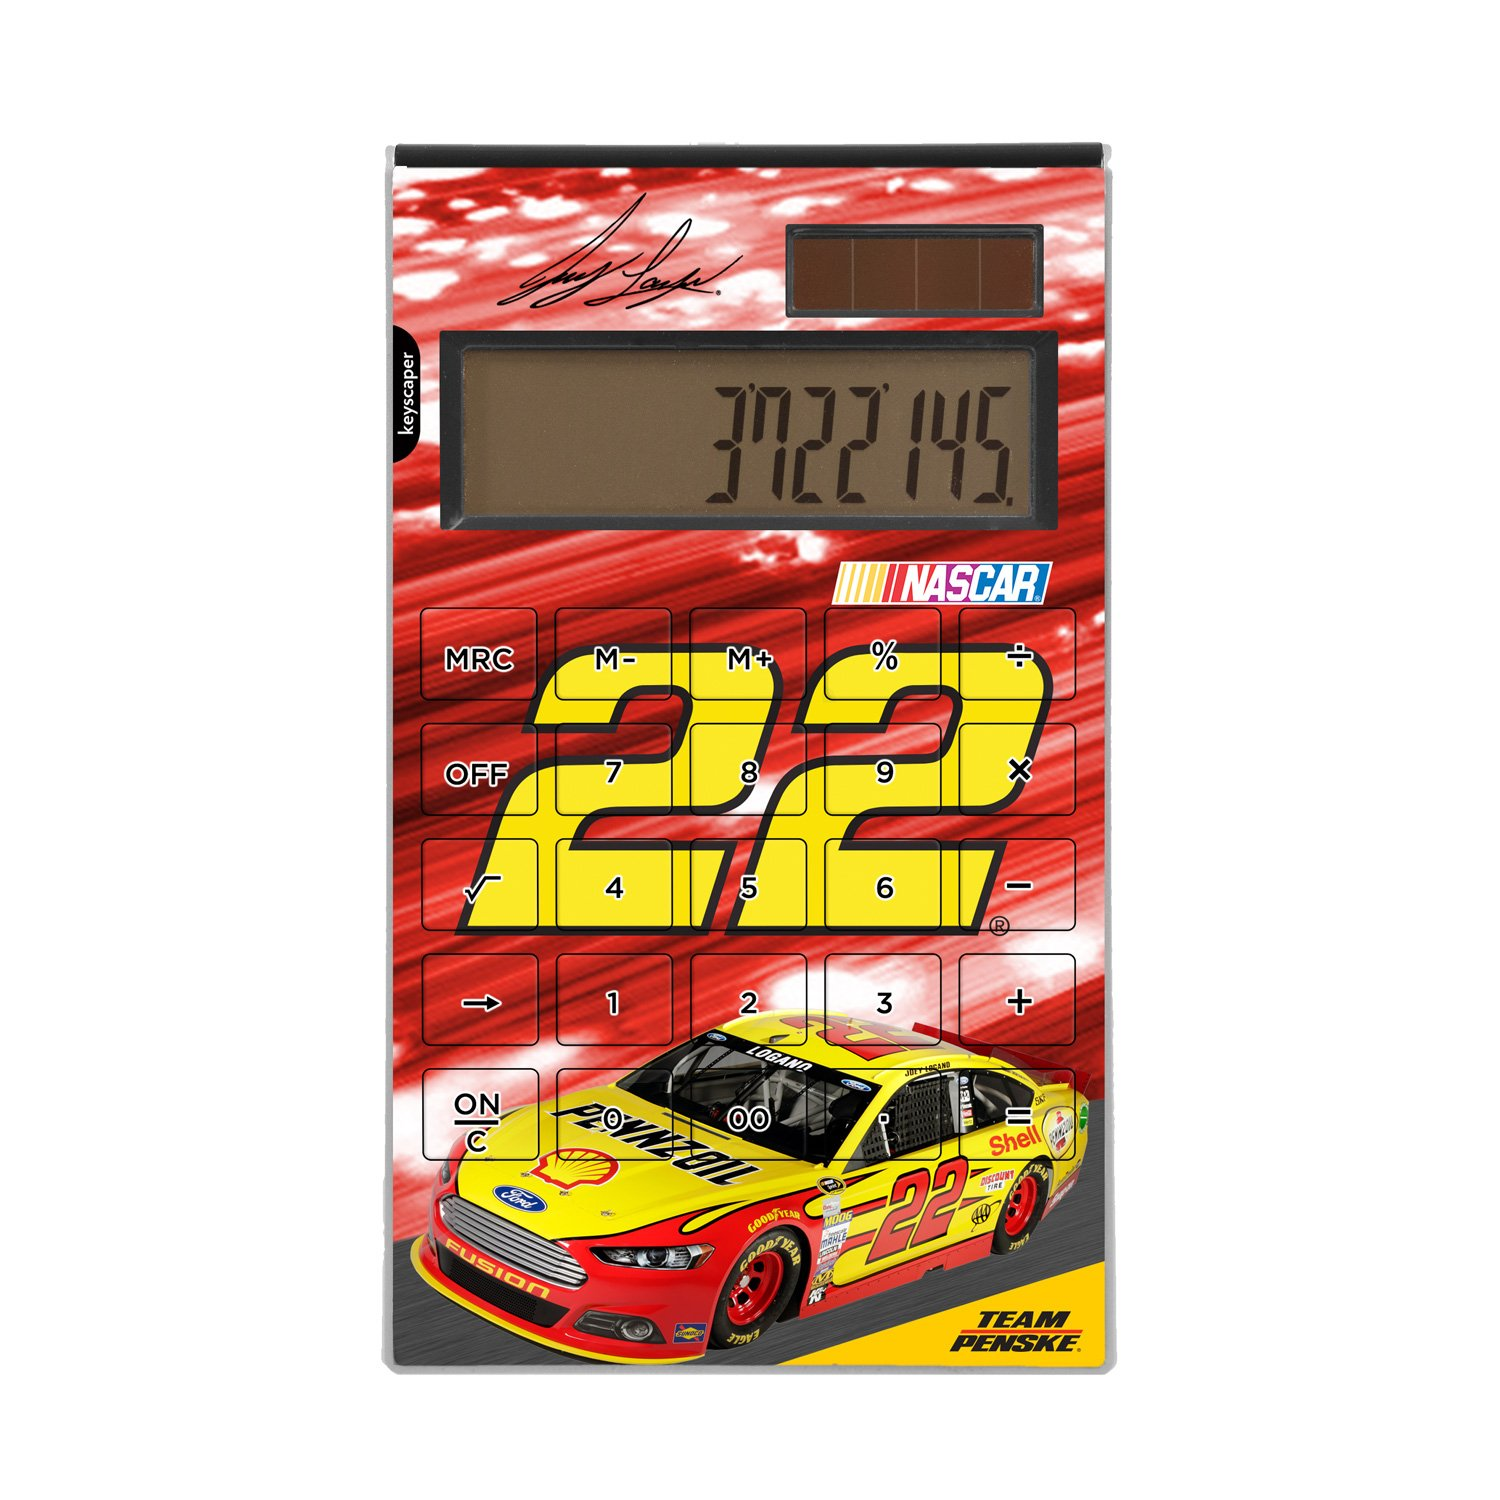 Joey Logano Desktop Calculator officially licensed by NASCAR Full Size Large Button Solar by keyscaper® by Keyscaper